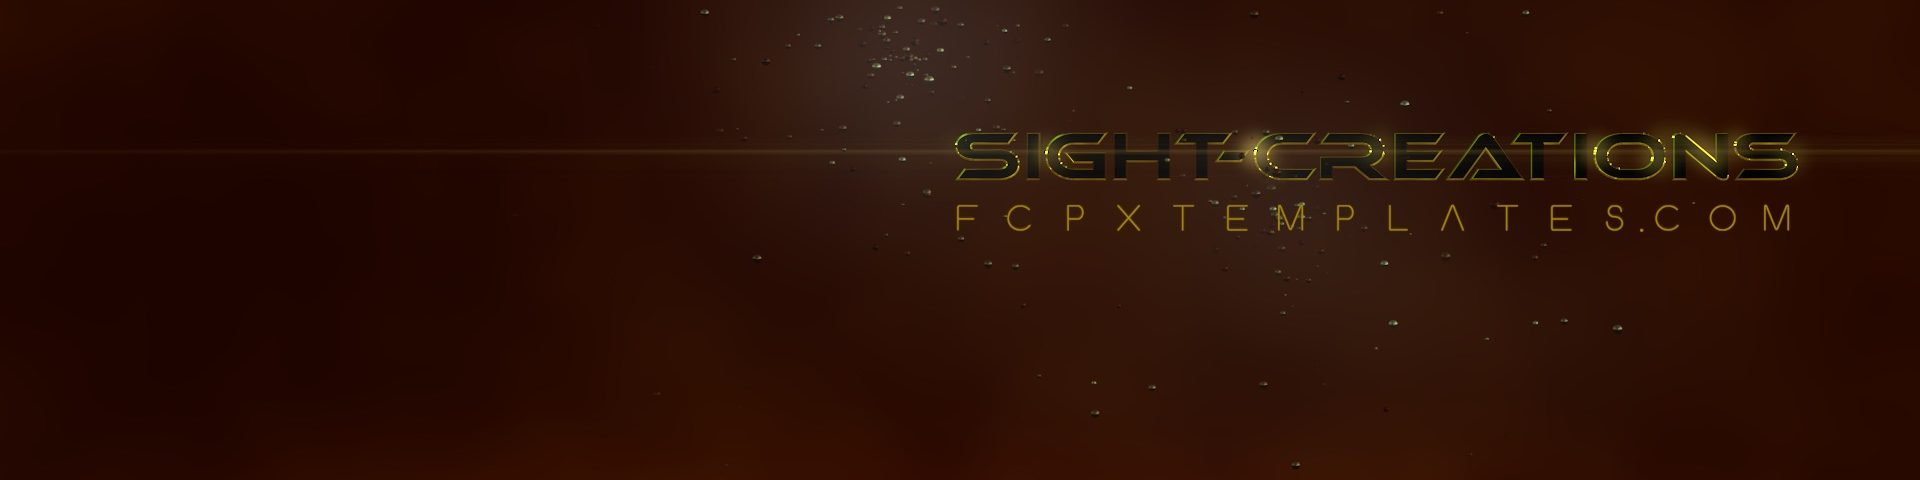 The FCPX Files - home of Sight-Creations Plugins on FCPXTemplates.com